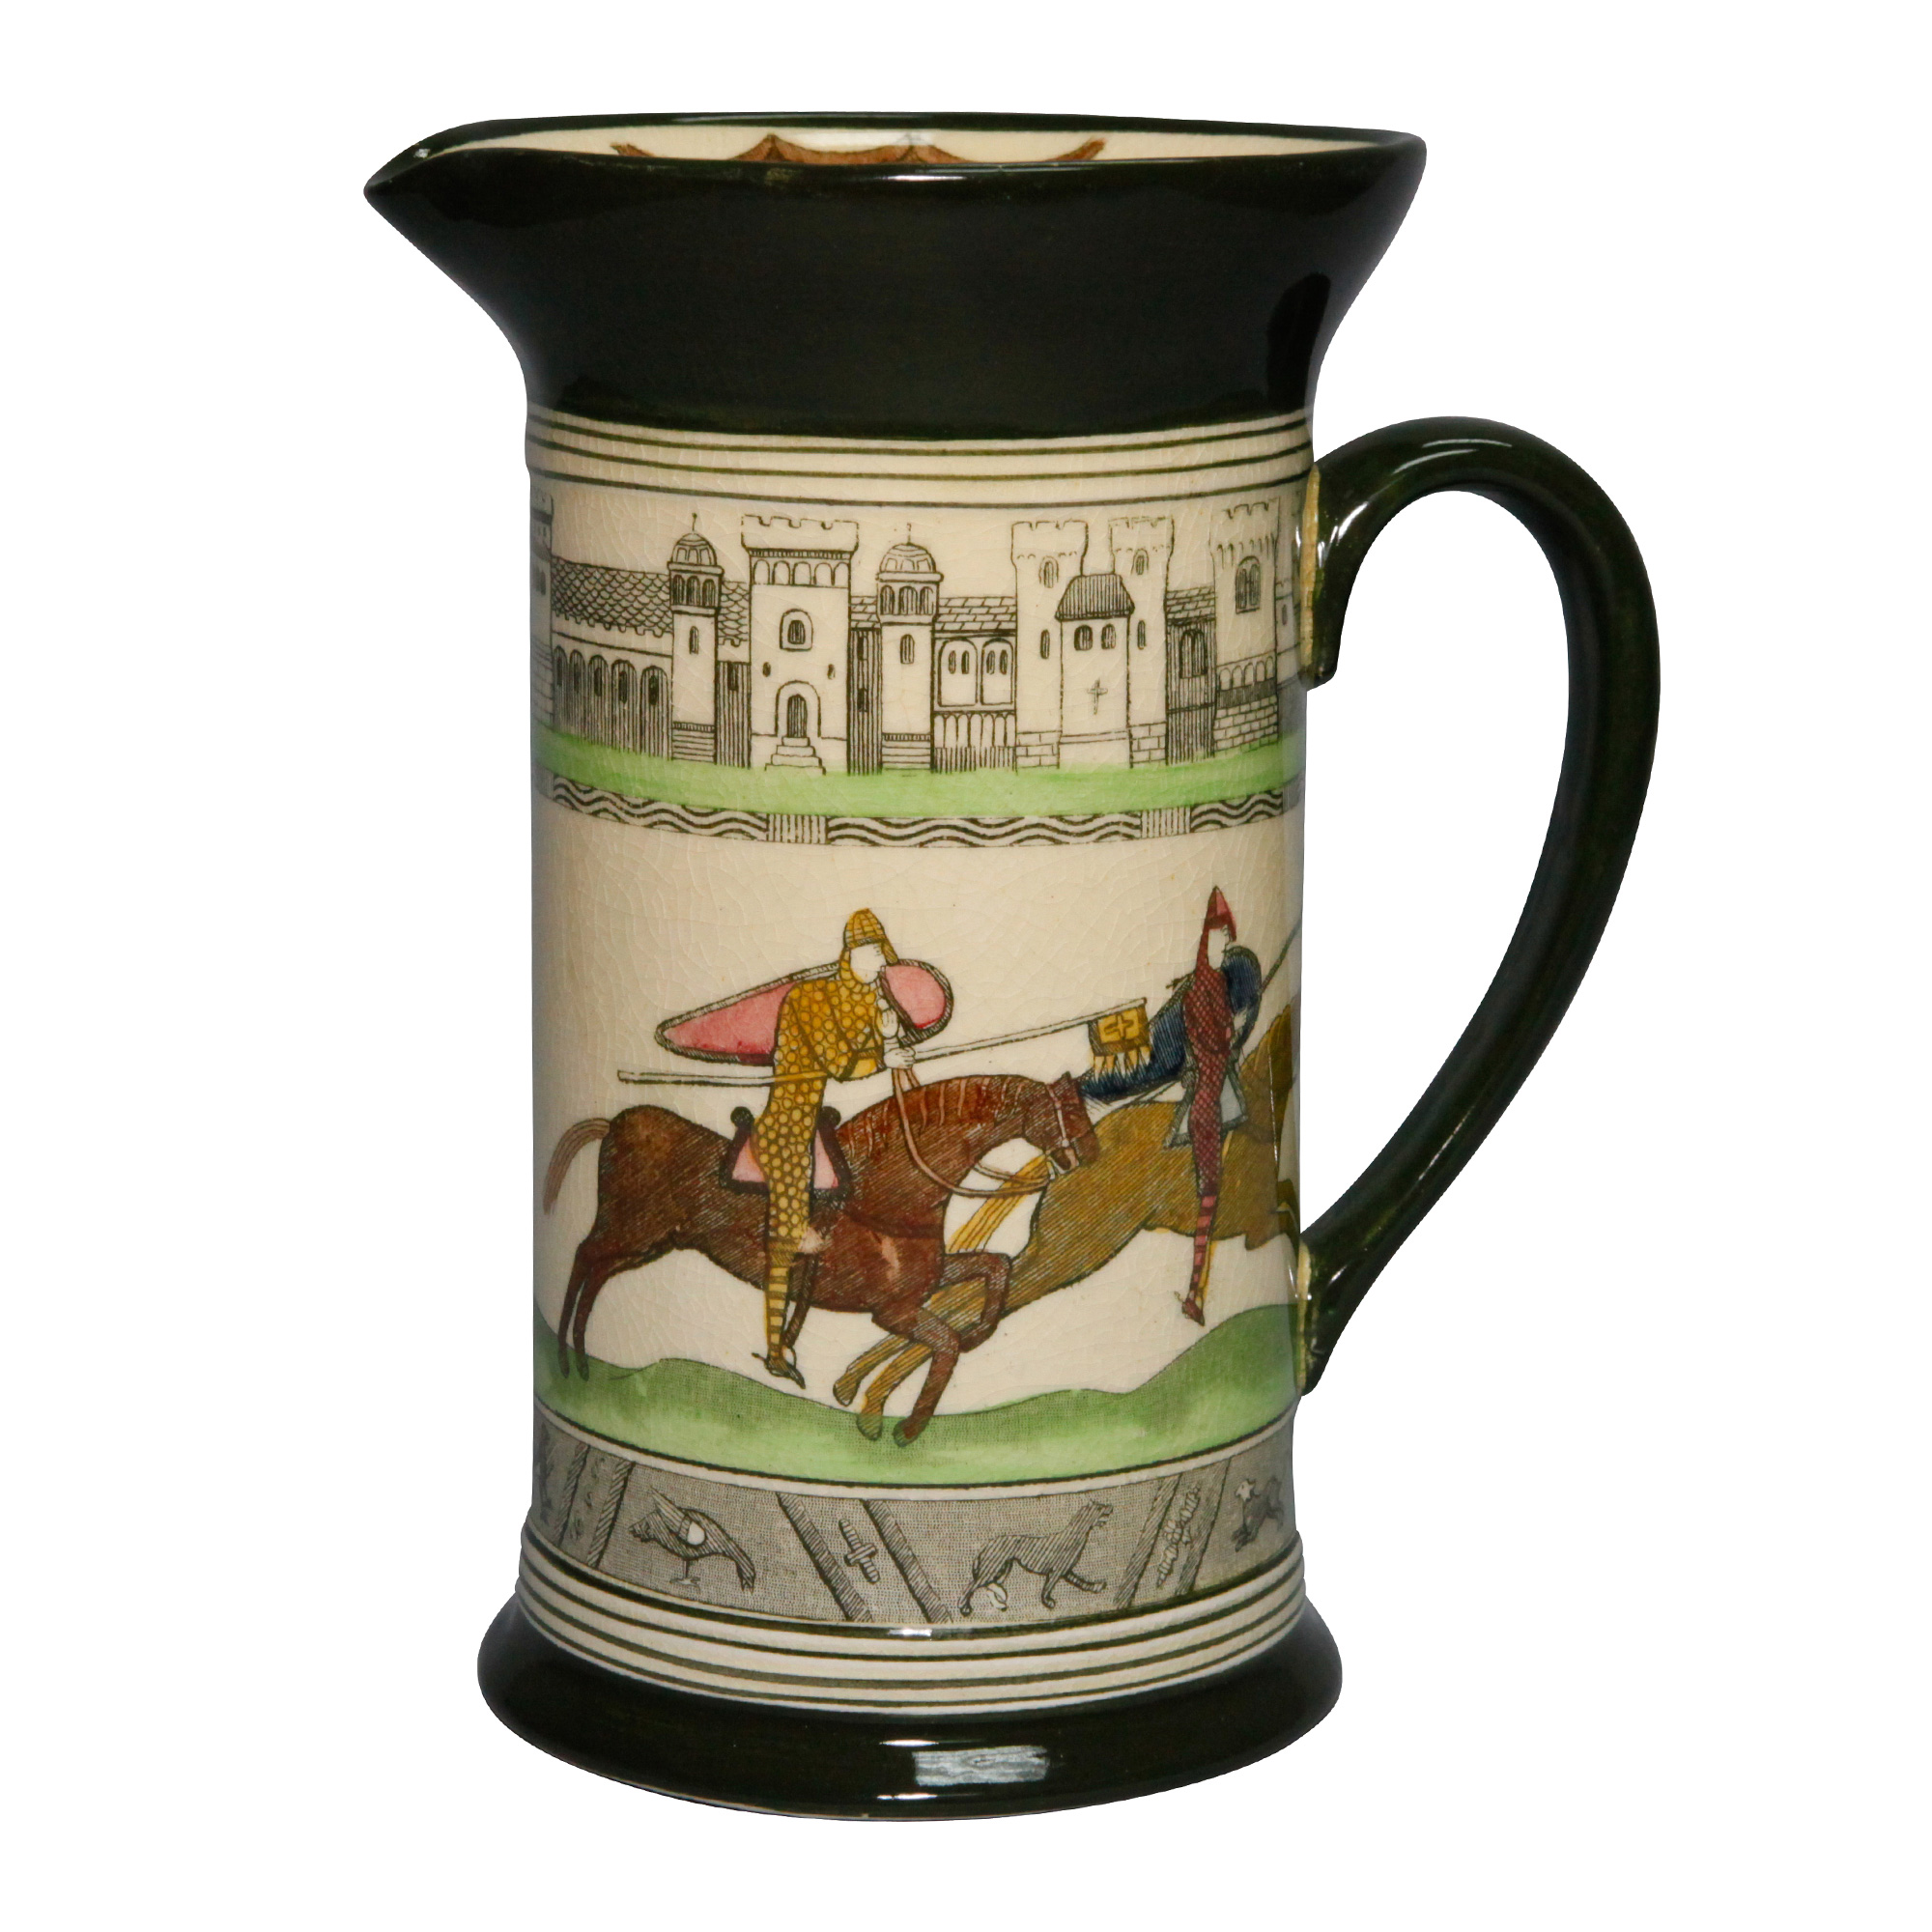 Bayeaux Tapestry Pitcher